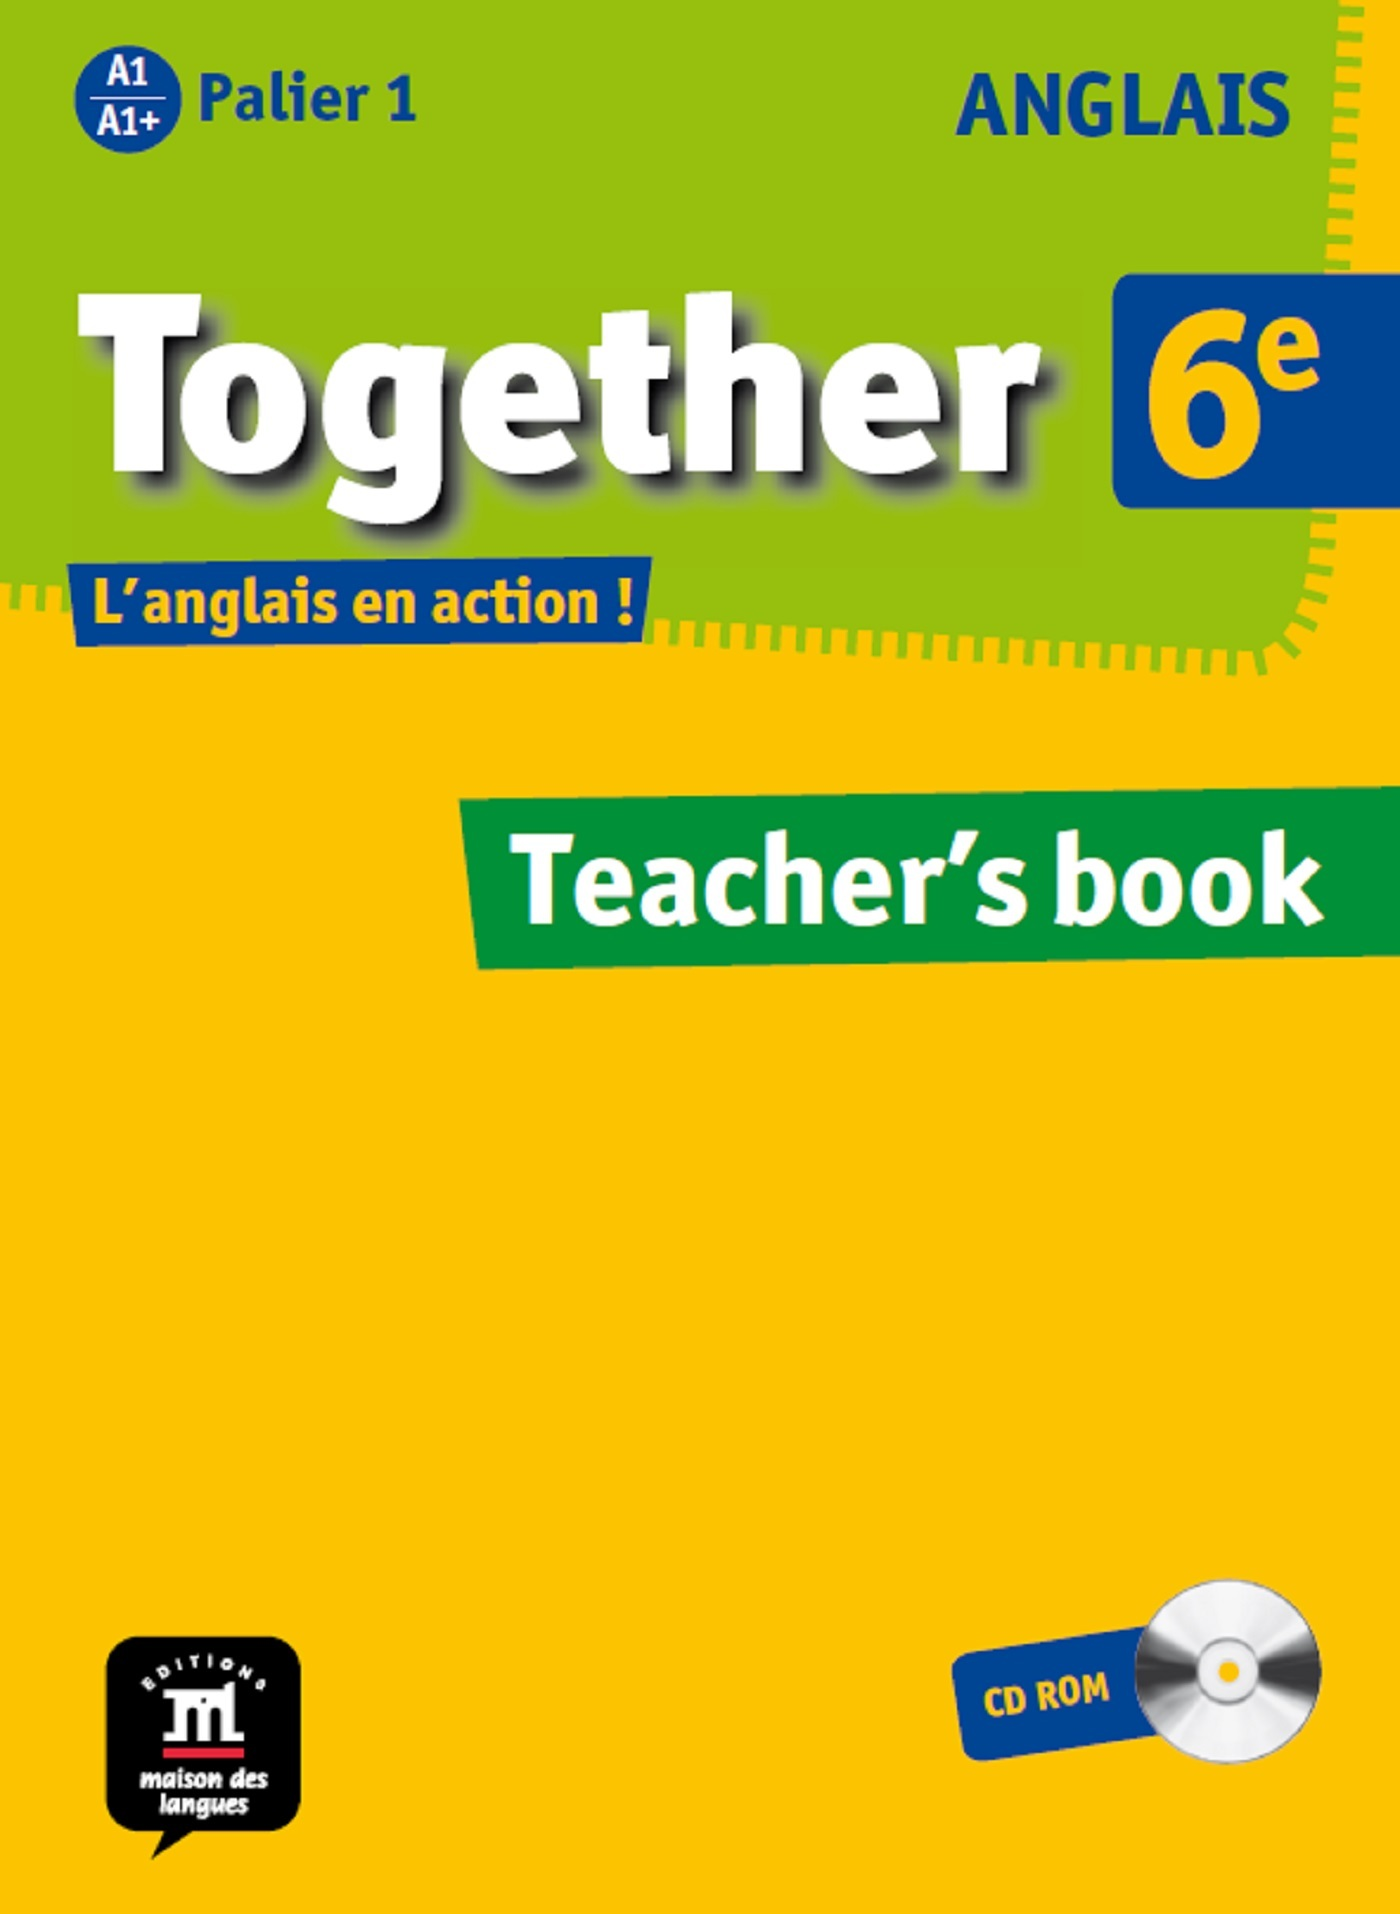 TOGETHER ANGLAIS 6E CDROM GUIDE PEDAGOGIQUE